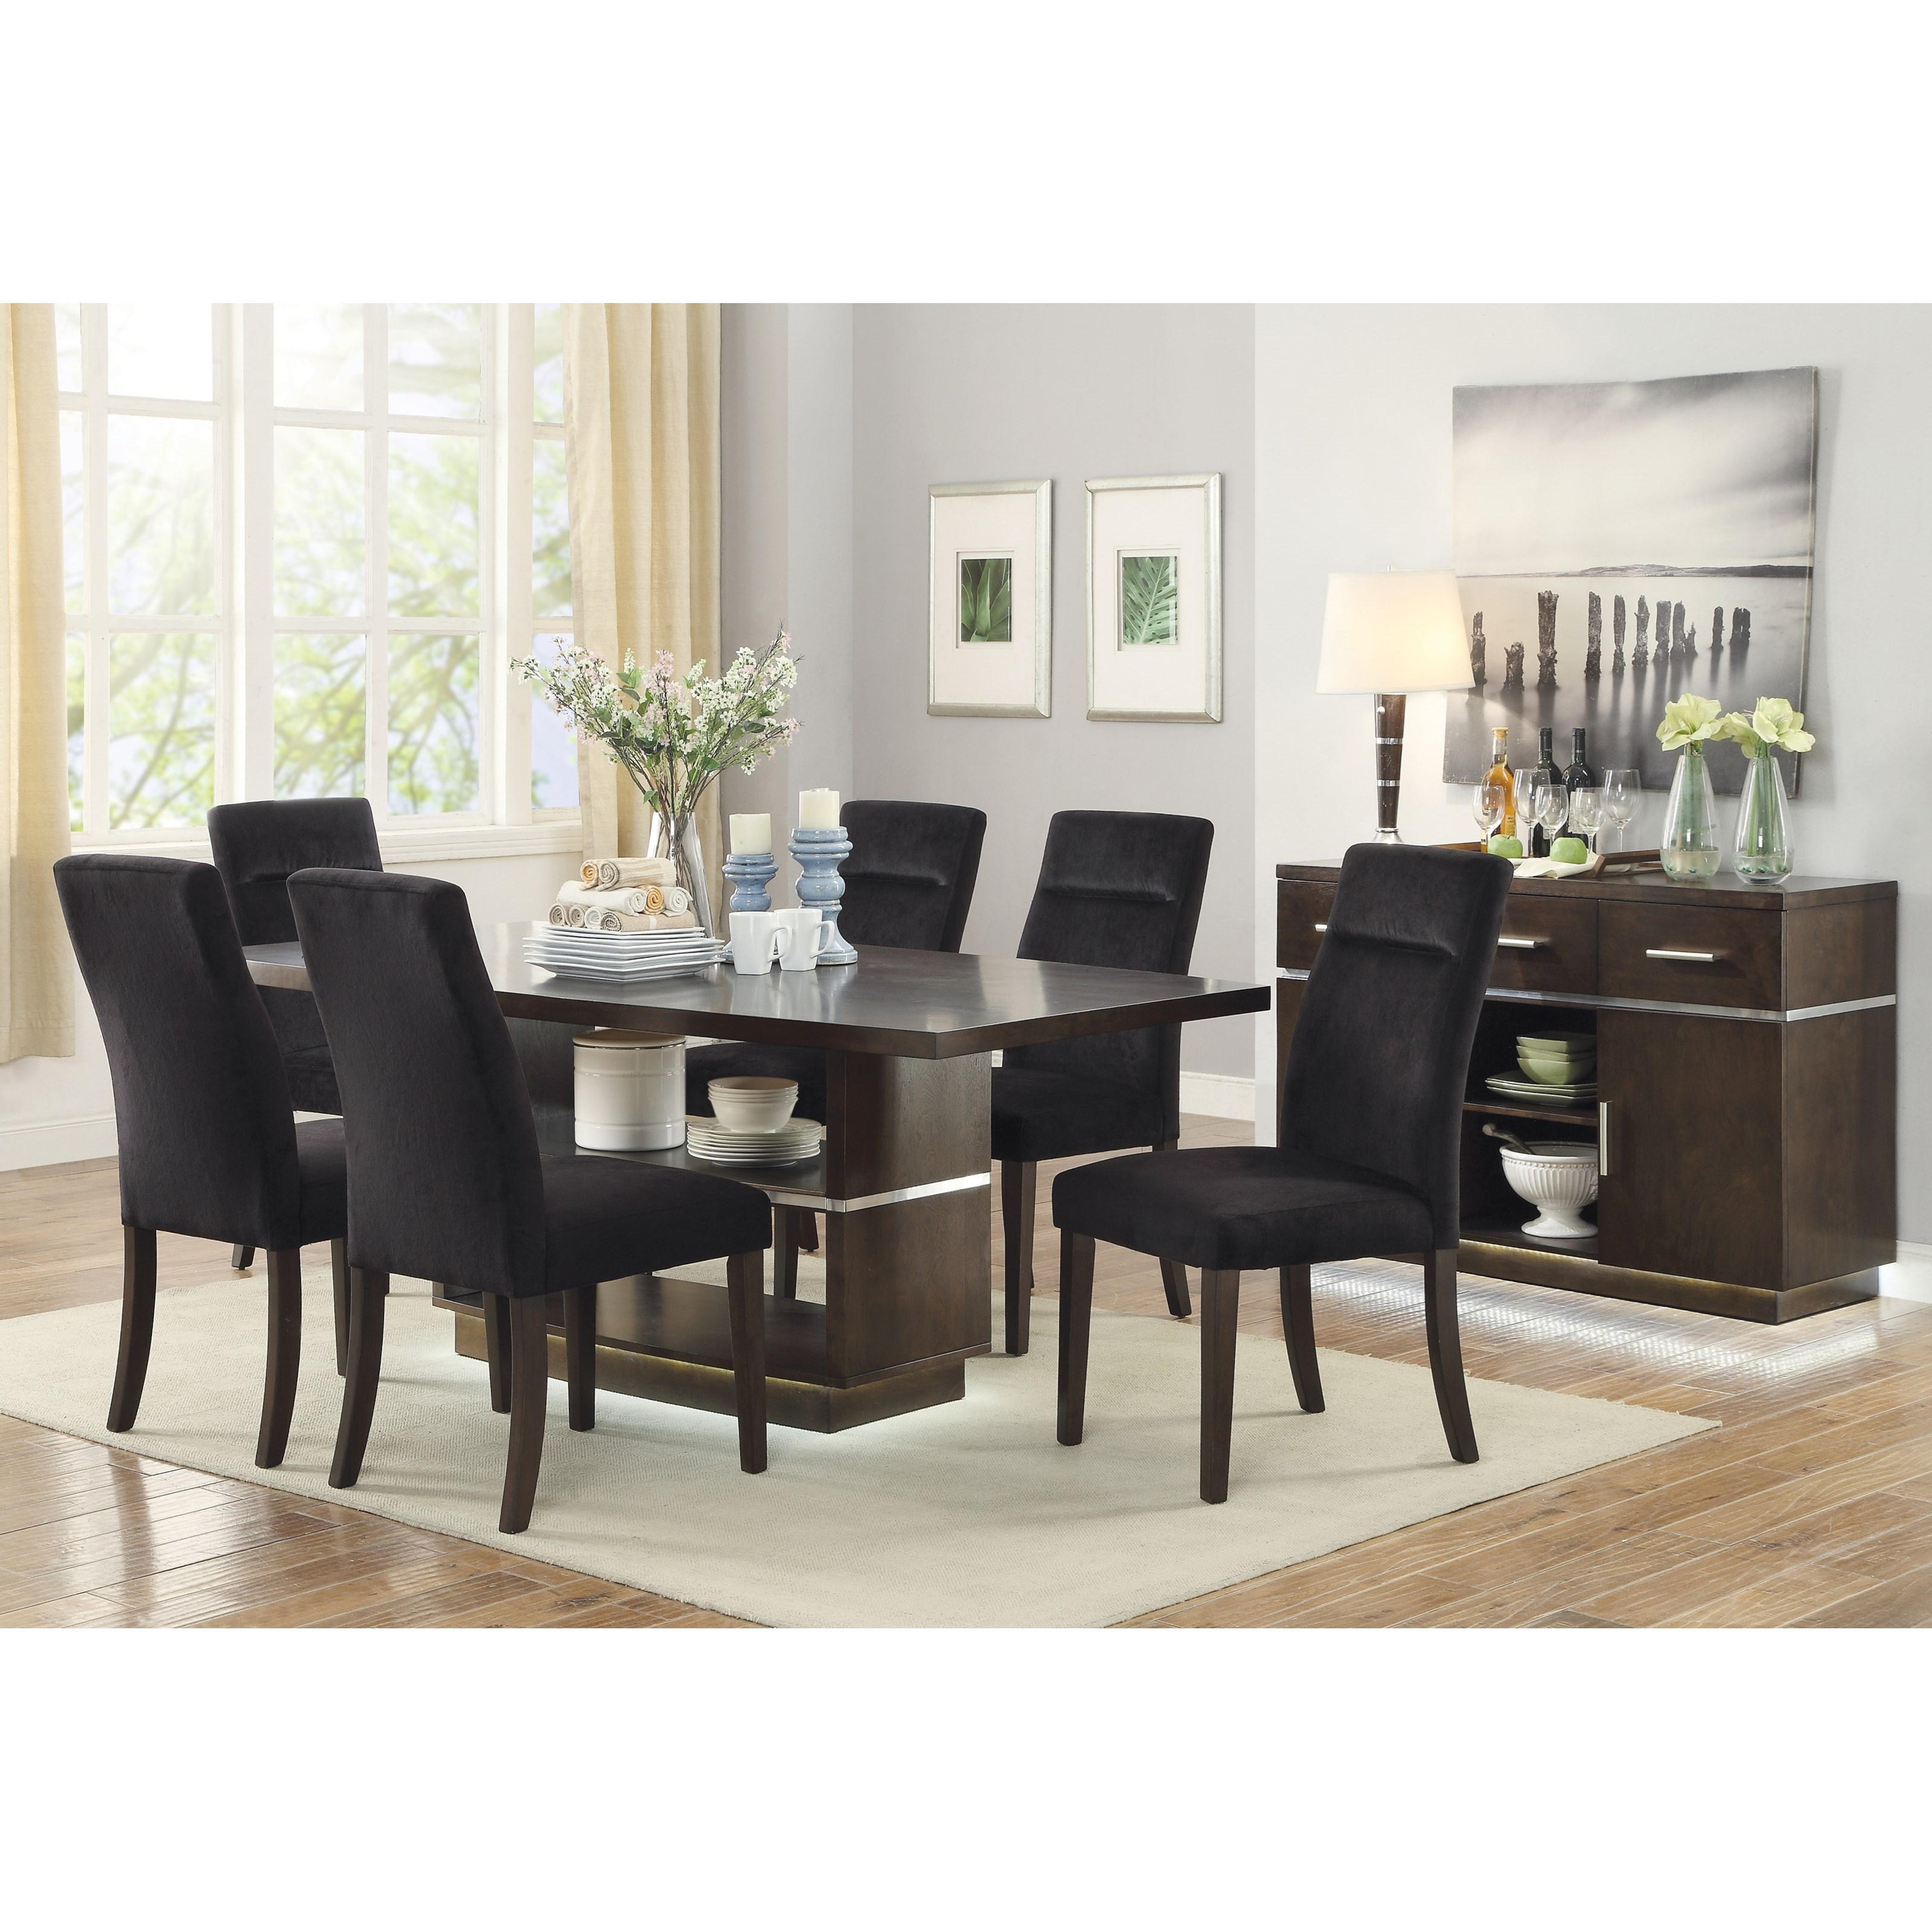 Coaster lincoln contemporary dining room group del sol for Casual dining room